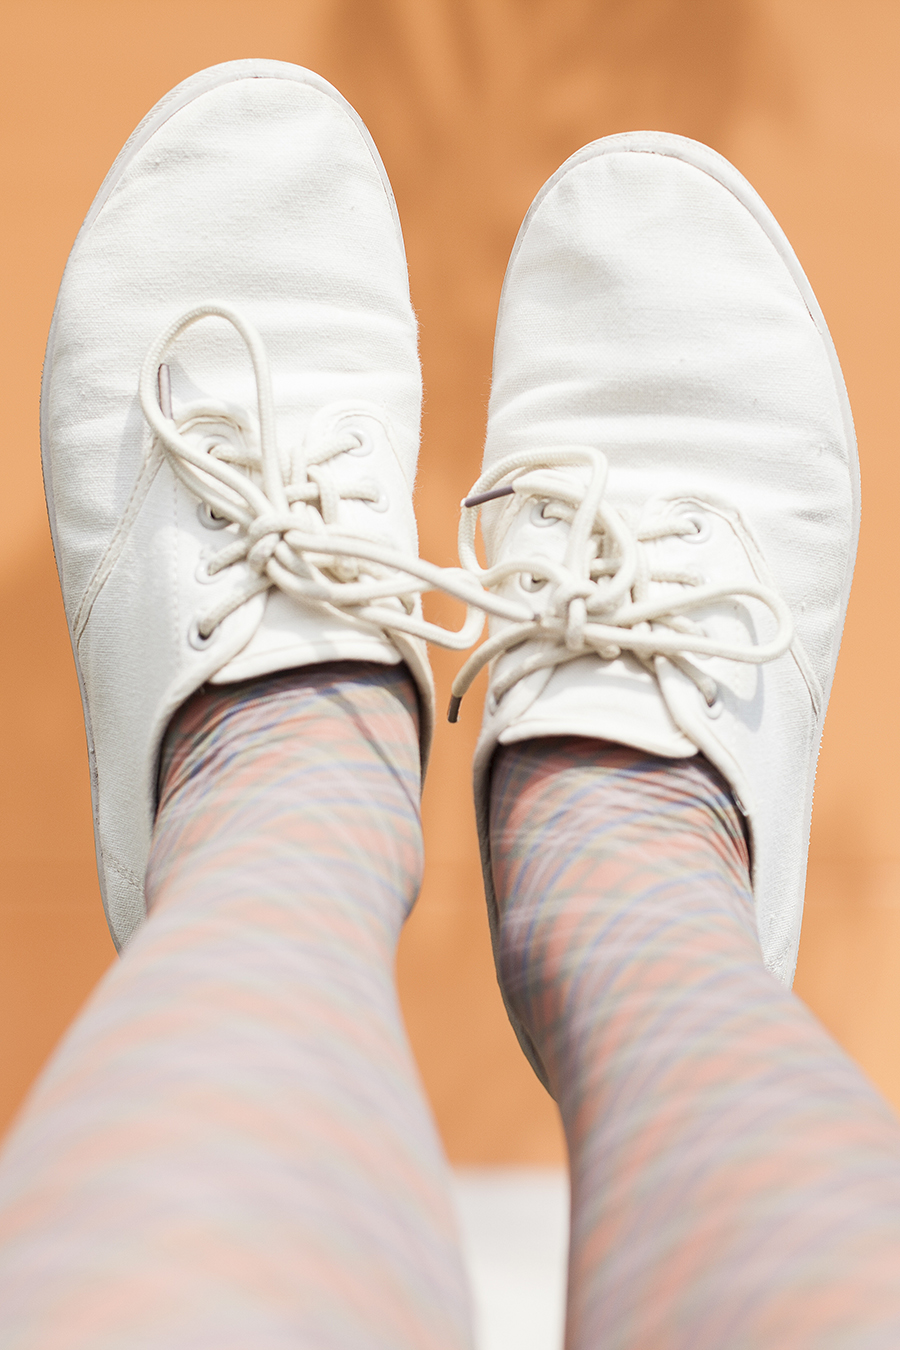 Topshop orange plaid tights, Cotton On beige lace-ups.